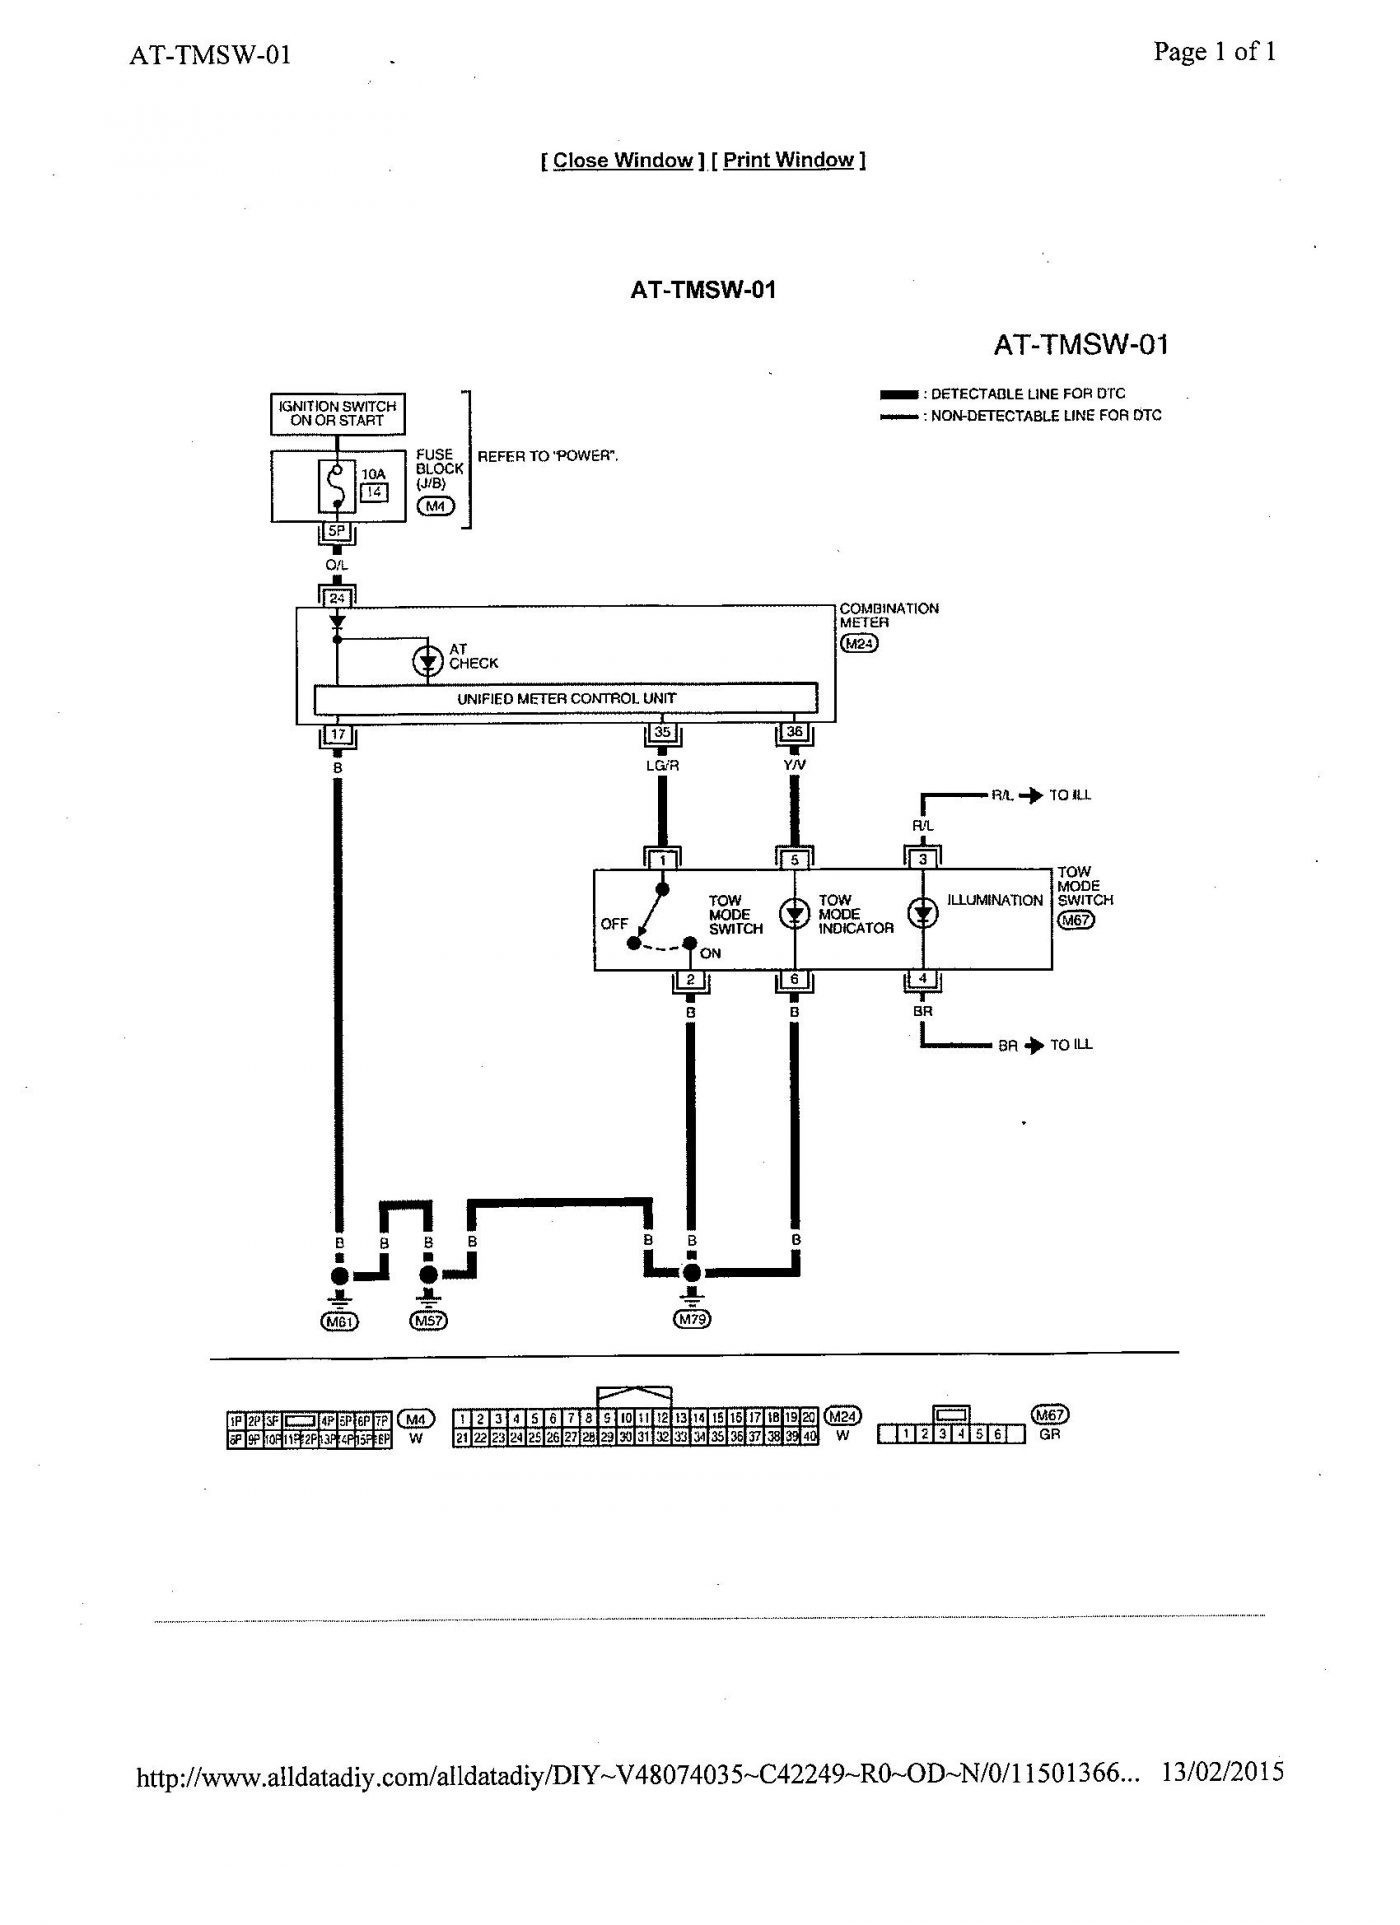 electric tarp switch wiring diagram Download-tarp switch wiring diagram wiring diagram services u2022 rh wiringdiagramguide services Ignition Coil Wiring Gooseneck Trailer 7-l